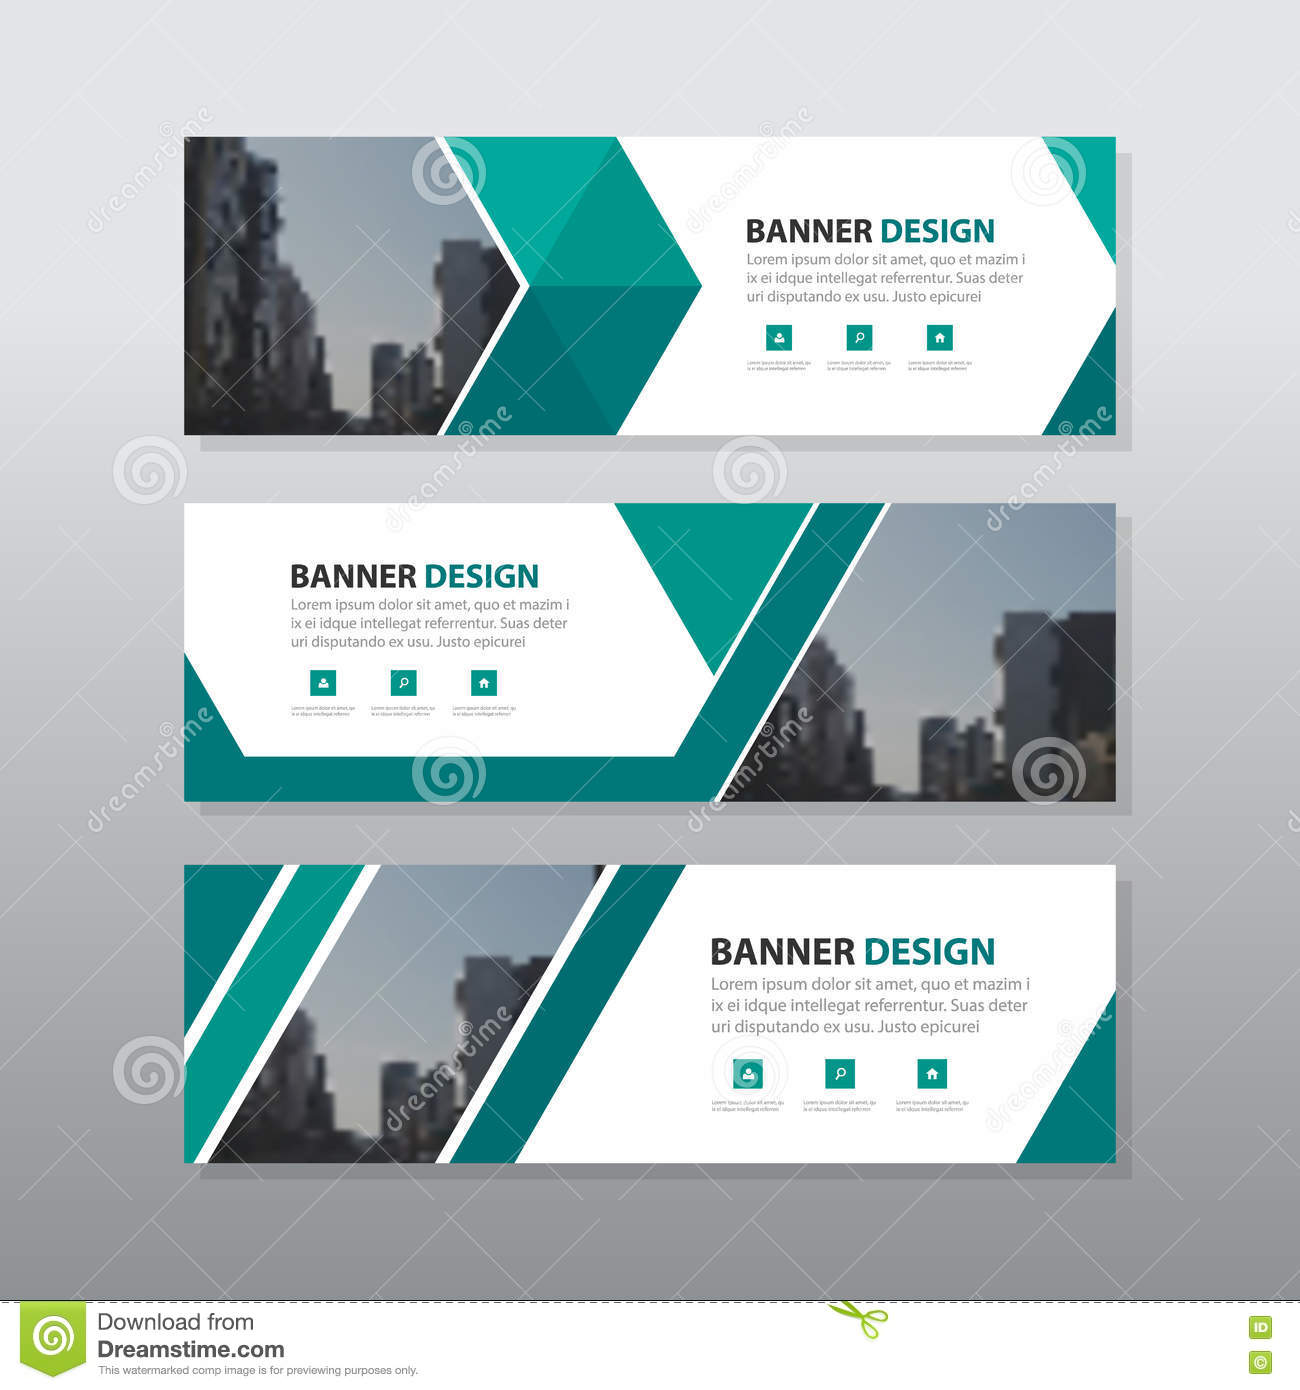 Advertising Banner Designs Examples